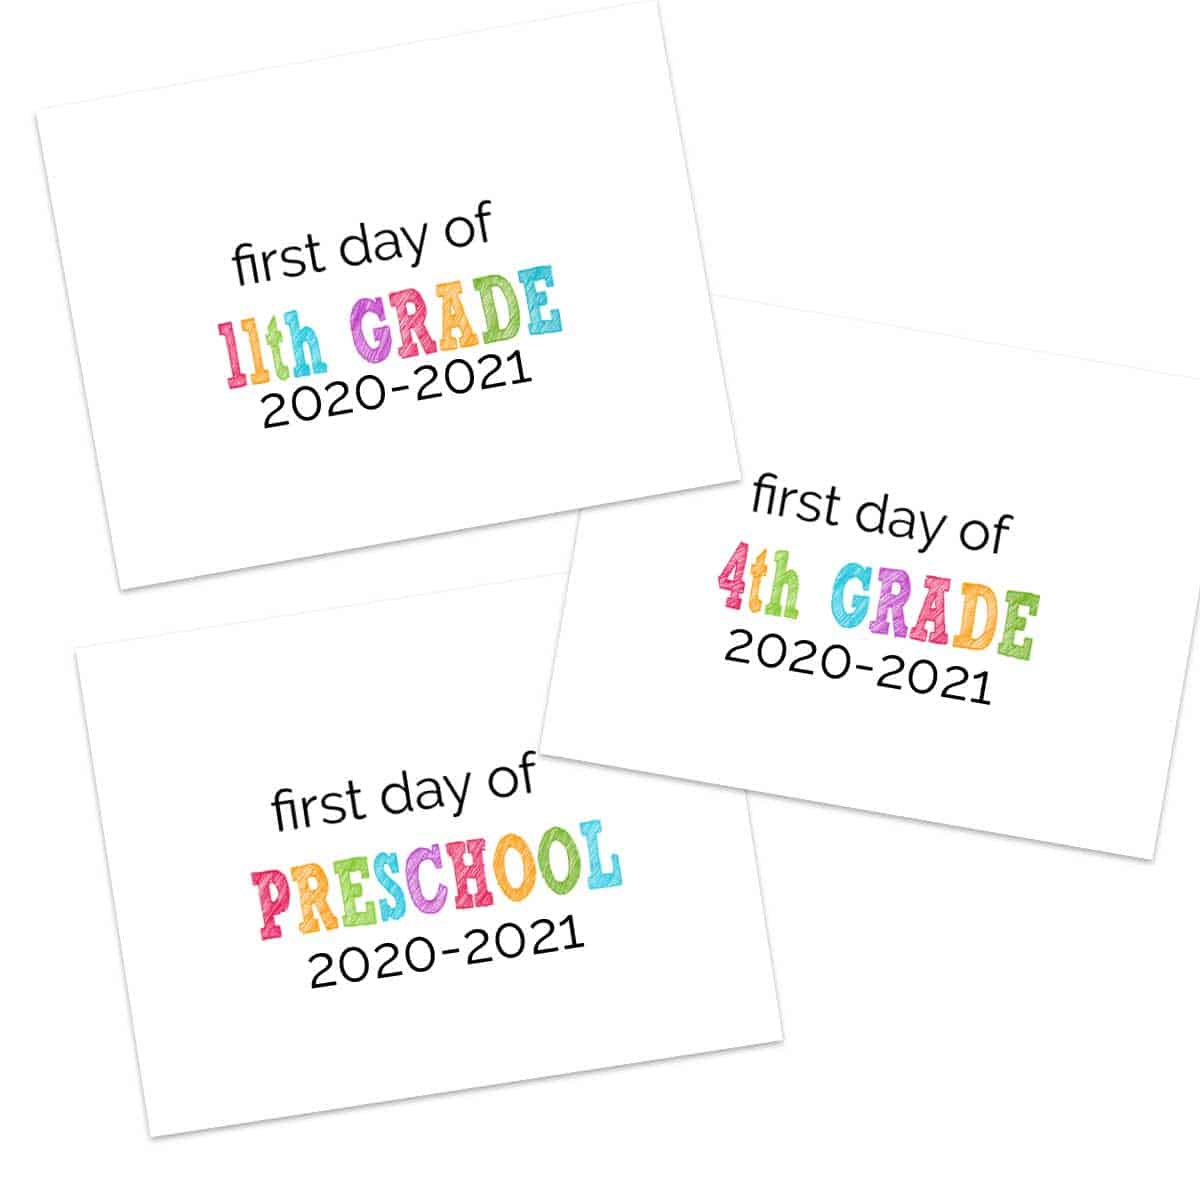 hight resolution of Printable First Day of School Signs 2020-2021   The Happier Homemaker